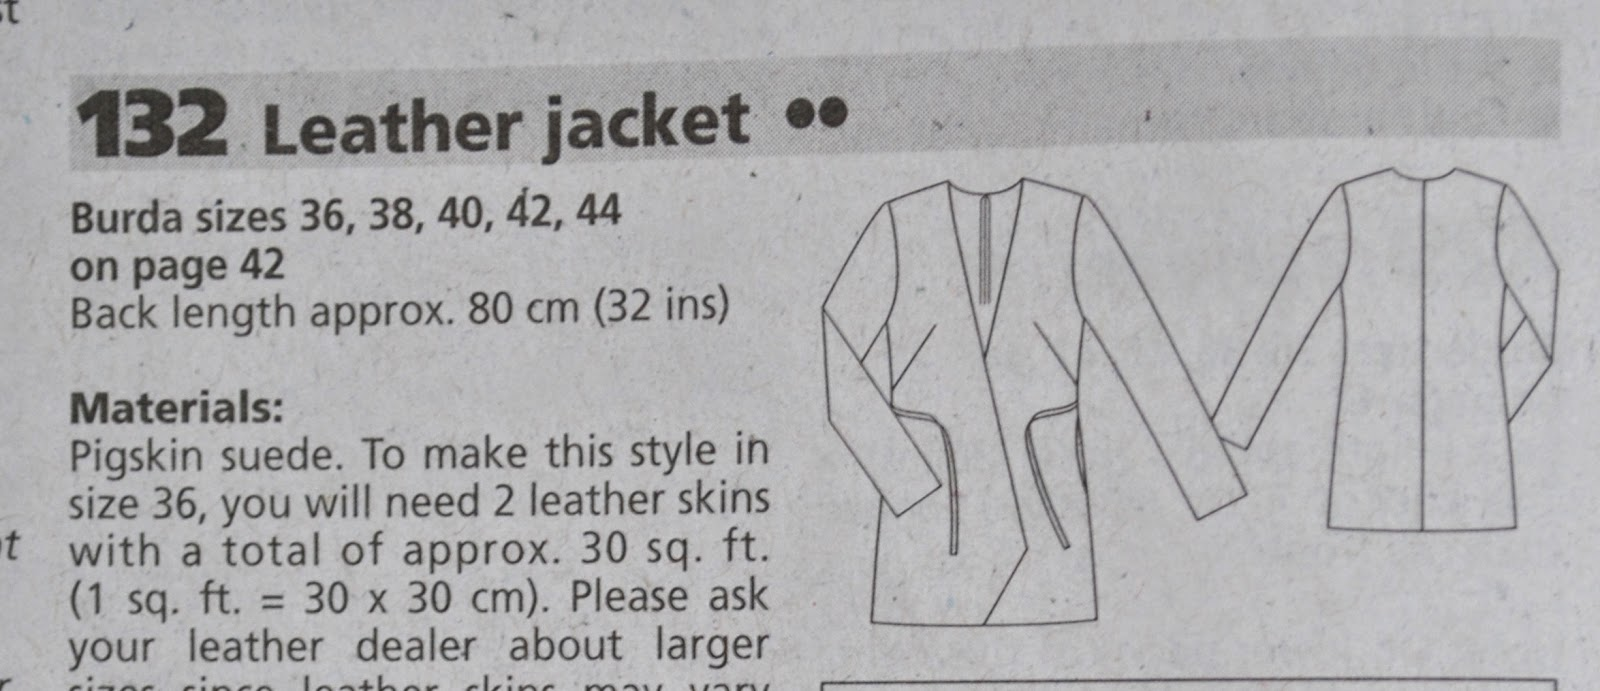 Unstructured Jacket Patterns The Pattern is Jacket 132 From